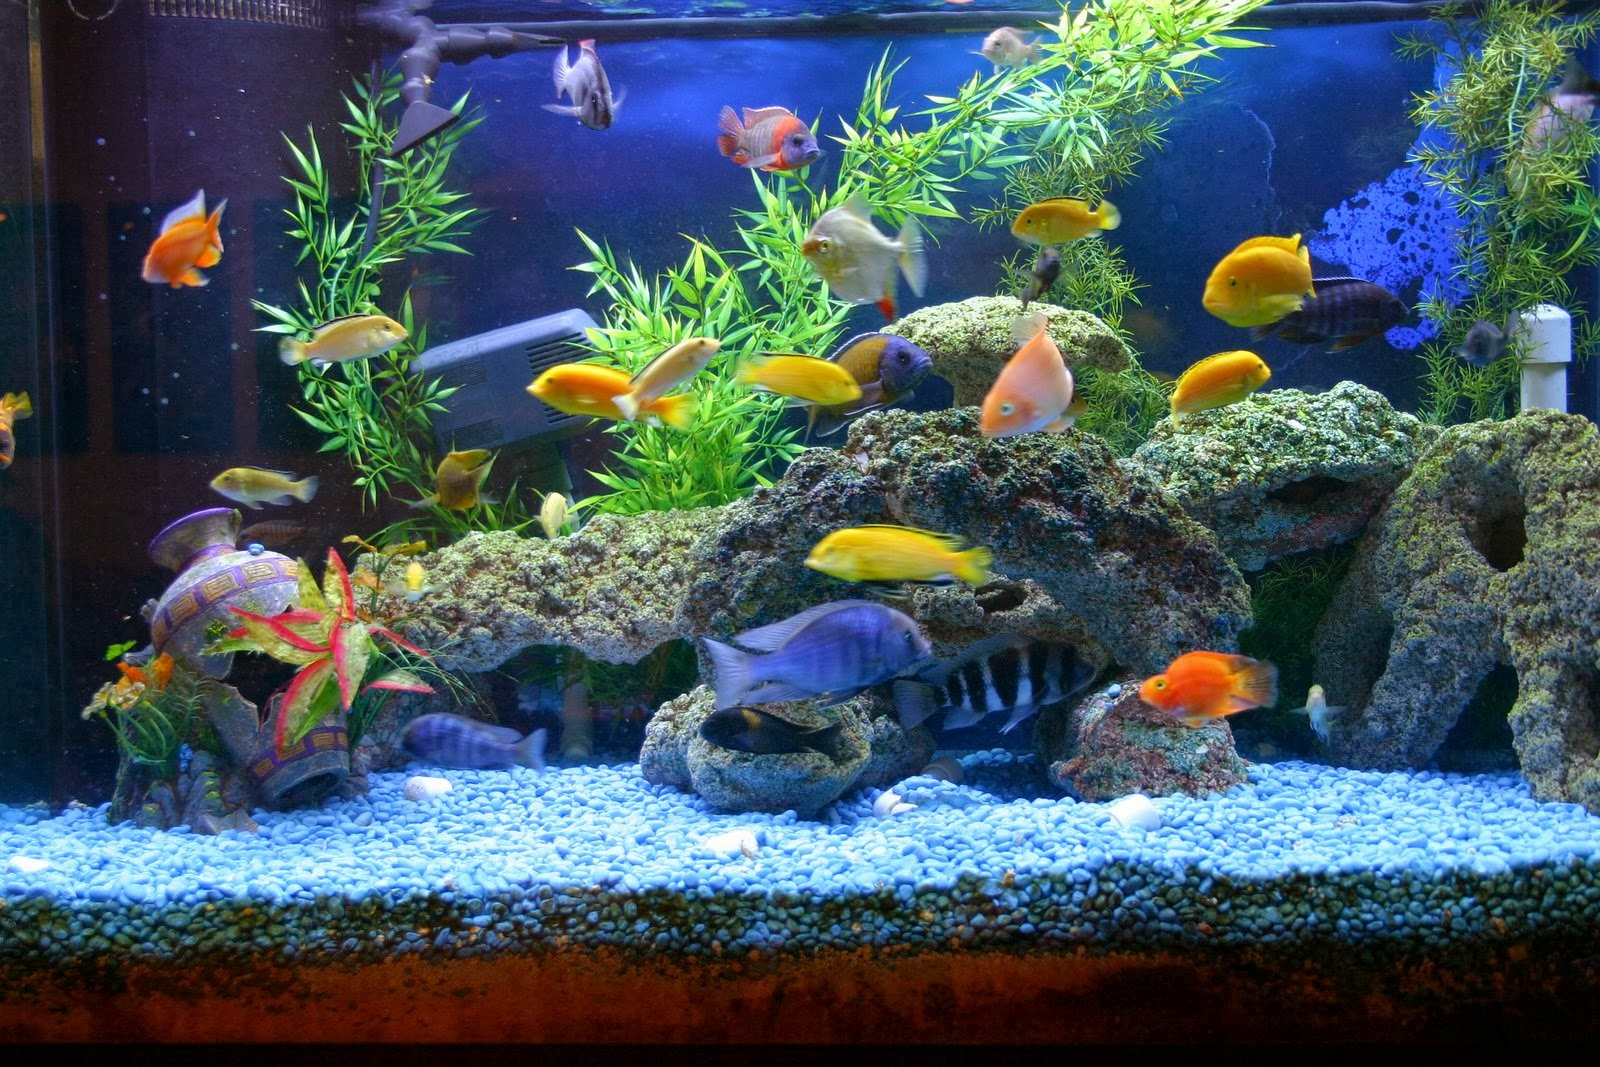 How to clean a dirty aquarium earnest foods for my soul for How do you clean a fish tank